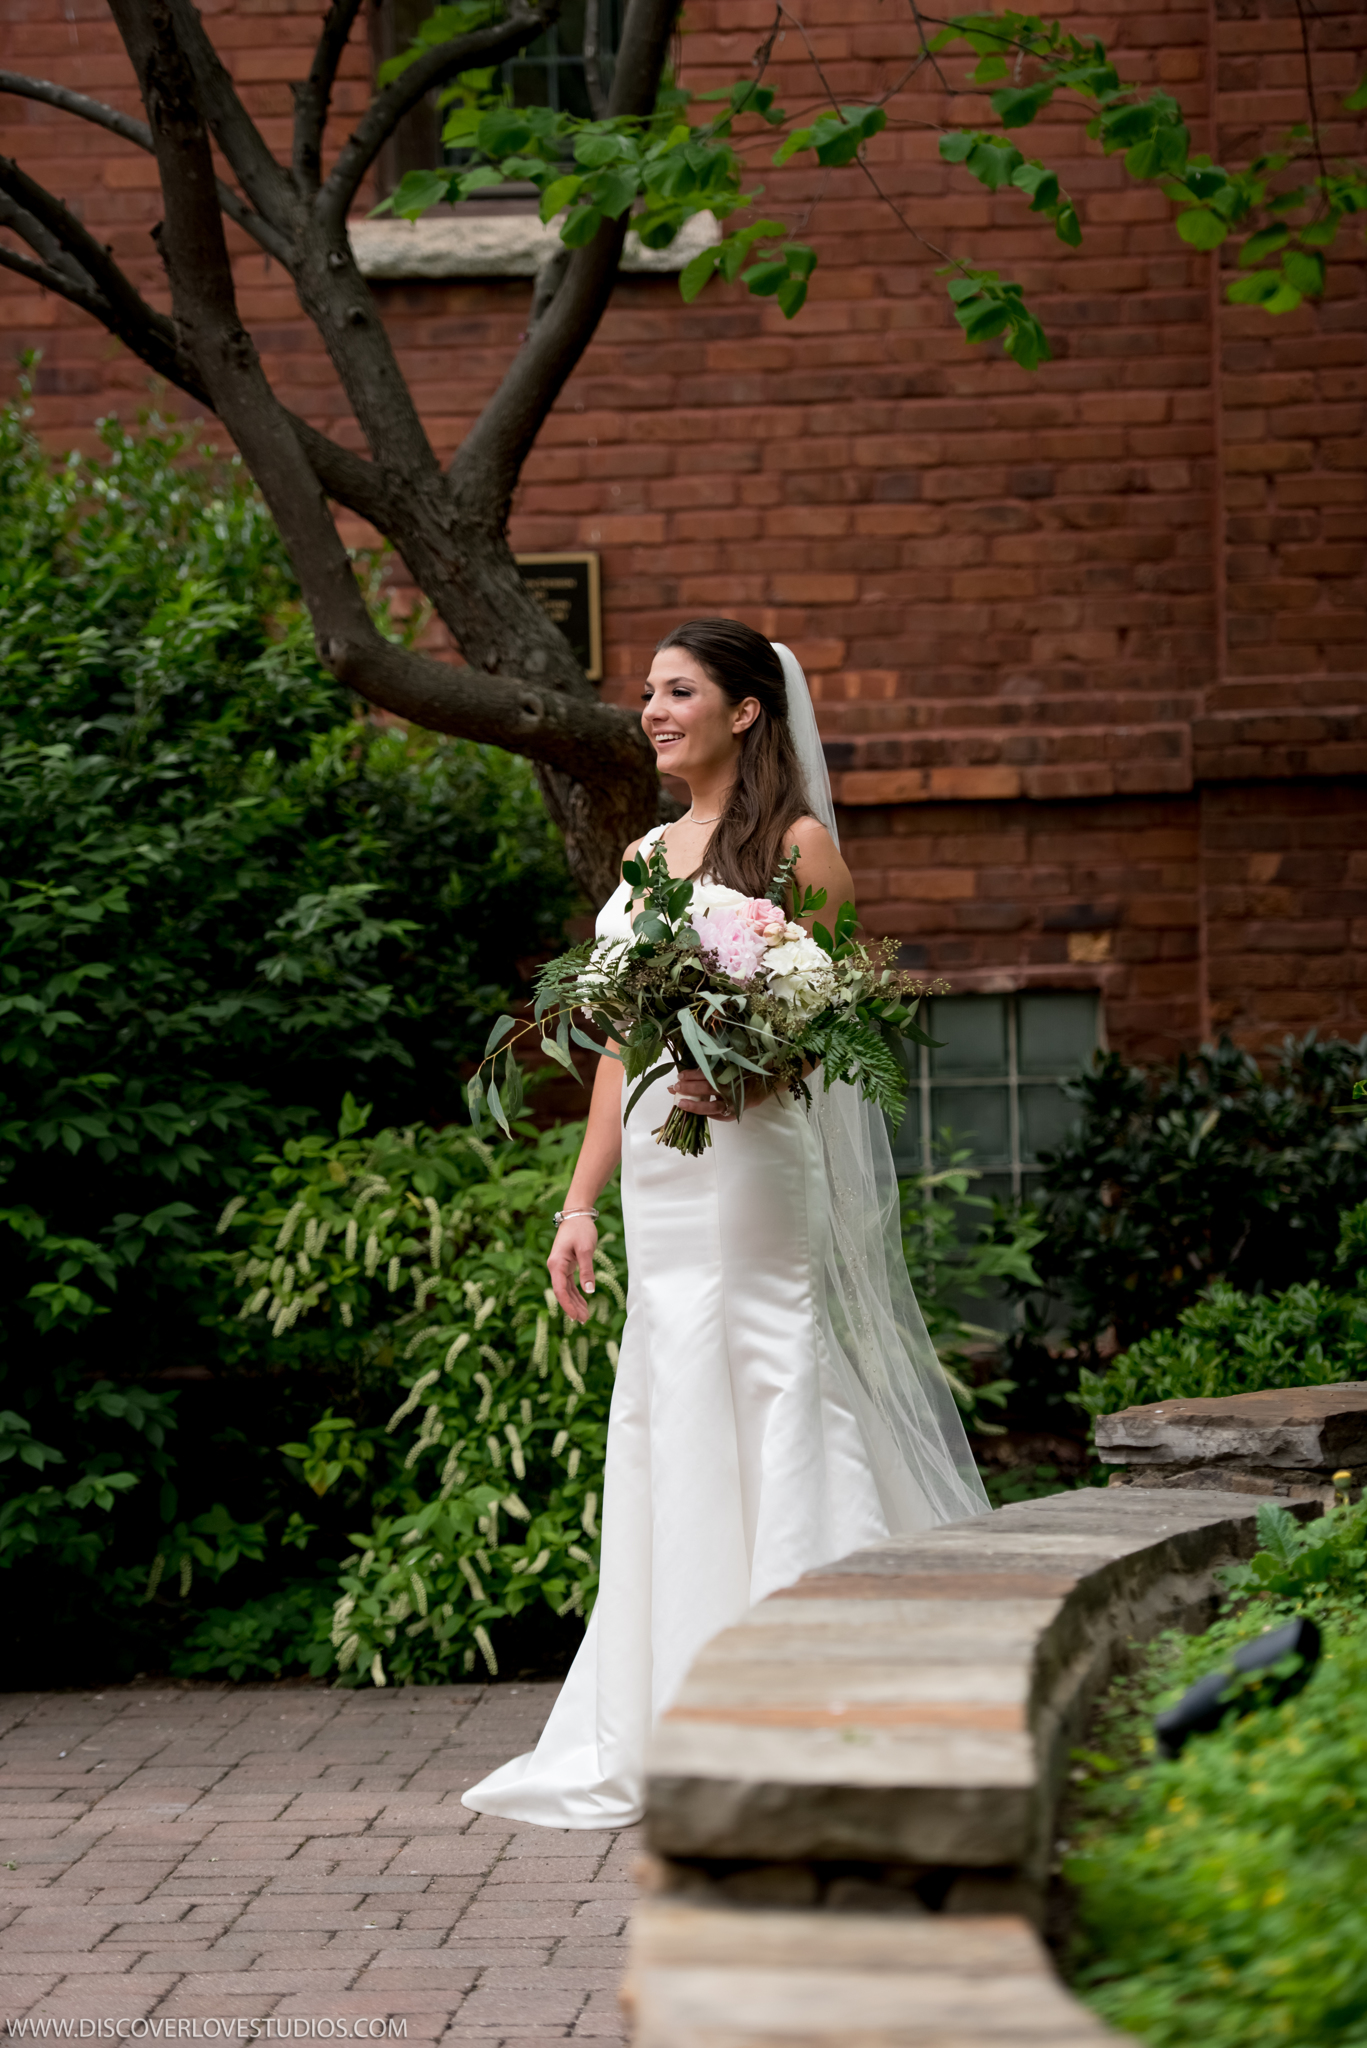 Bride enters into The Green in Uptown Charlotte for first look with groom before their wedding at The Mint Museum Uptown